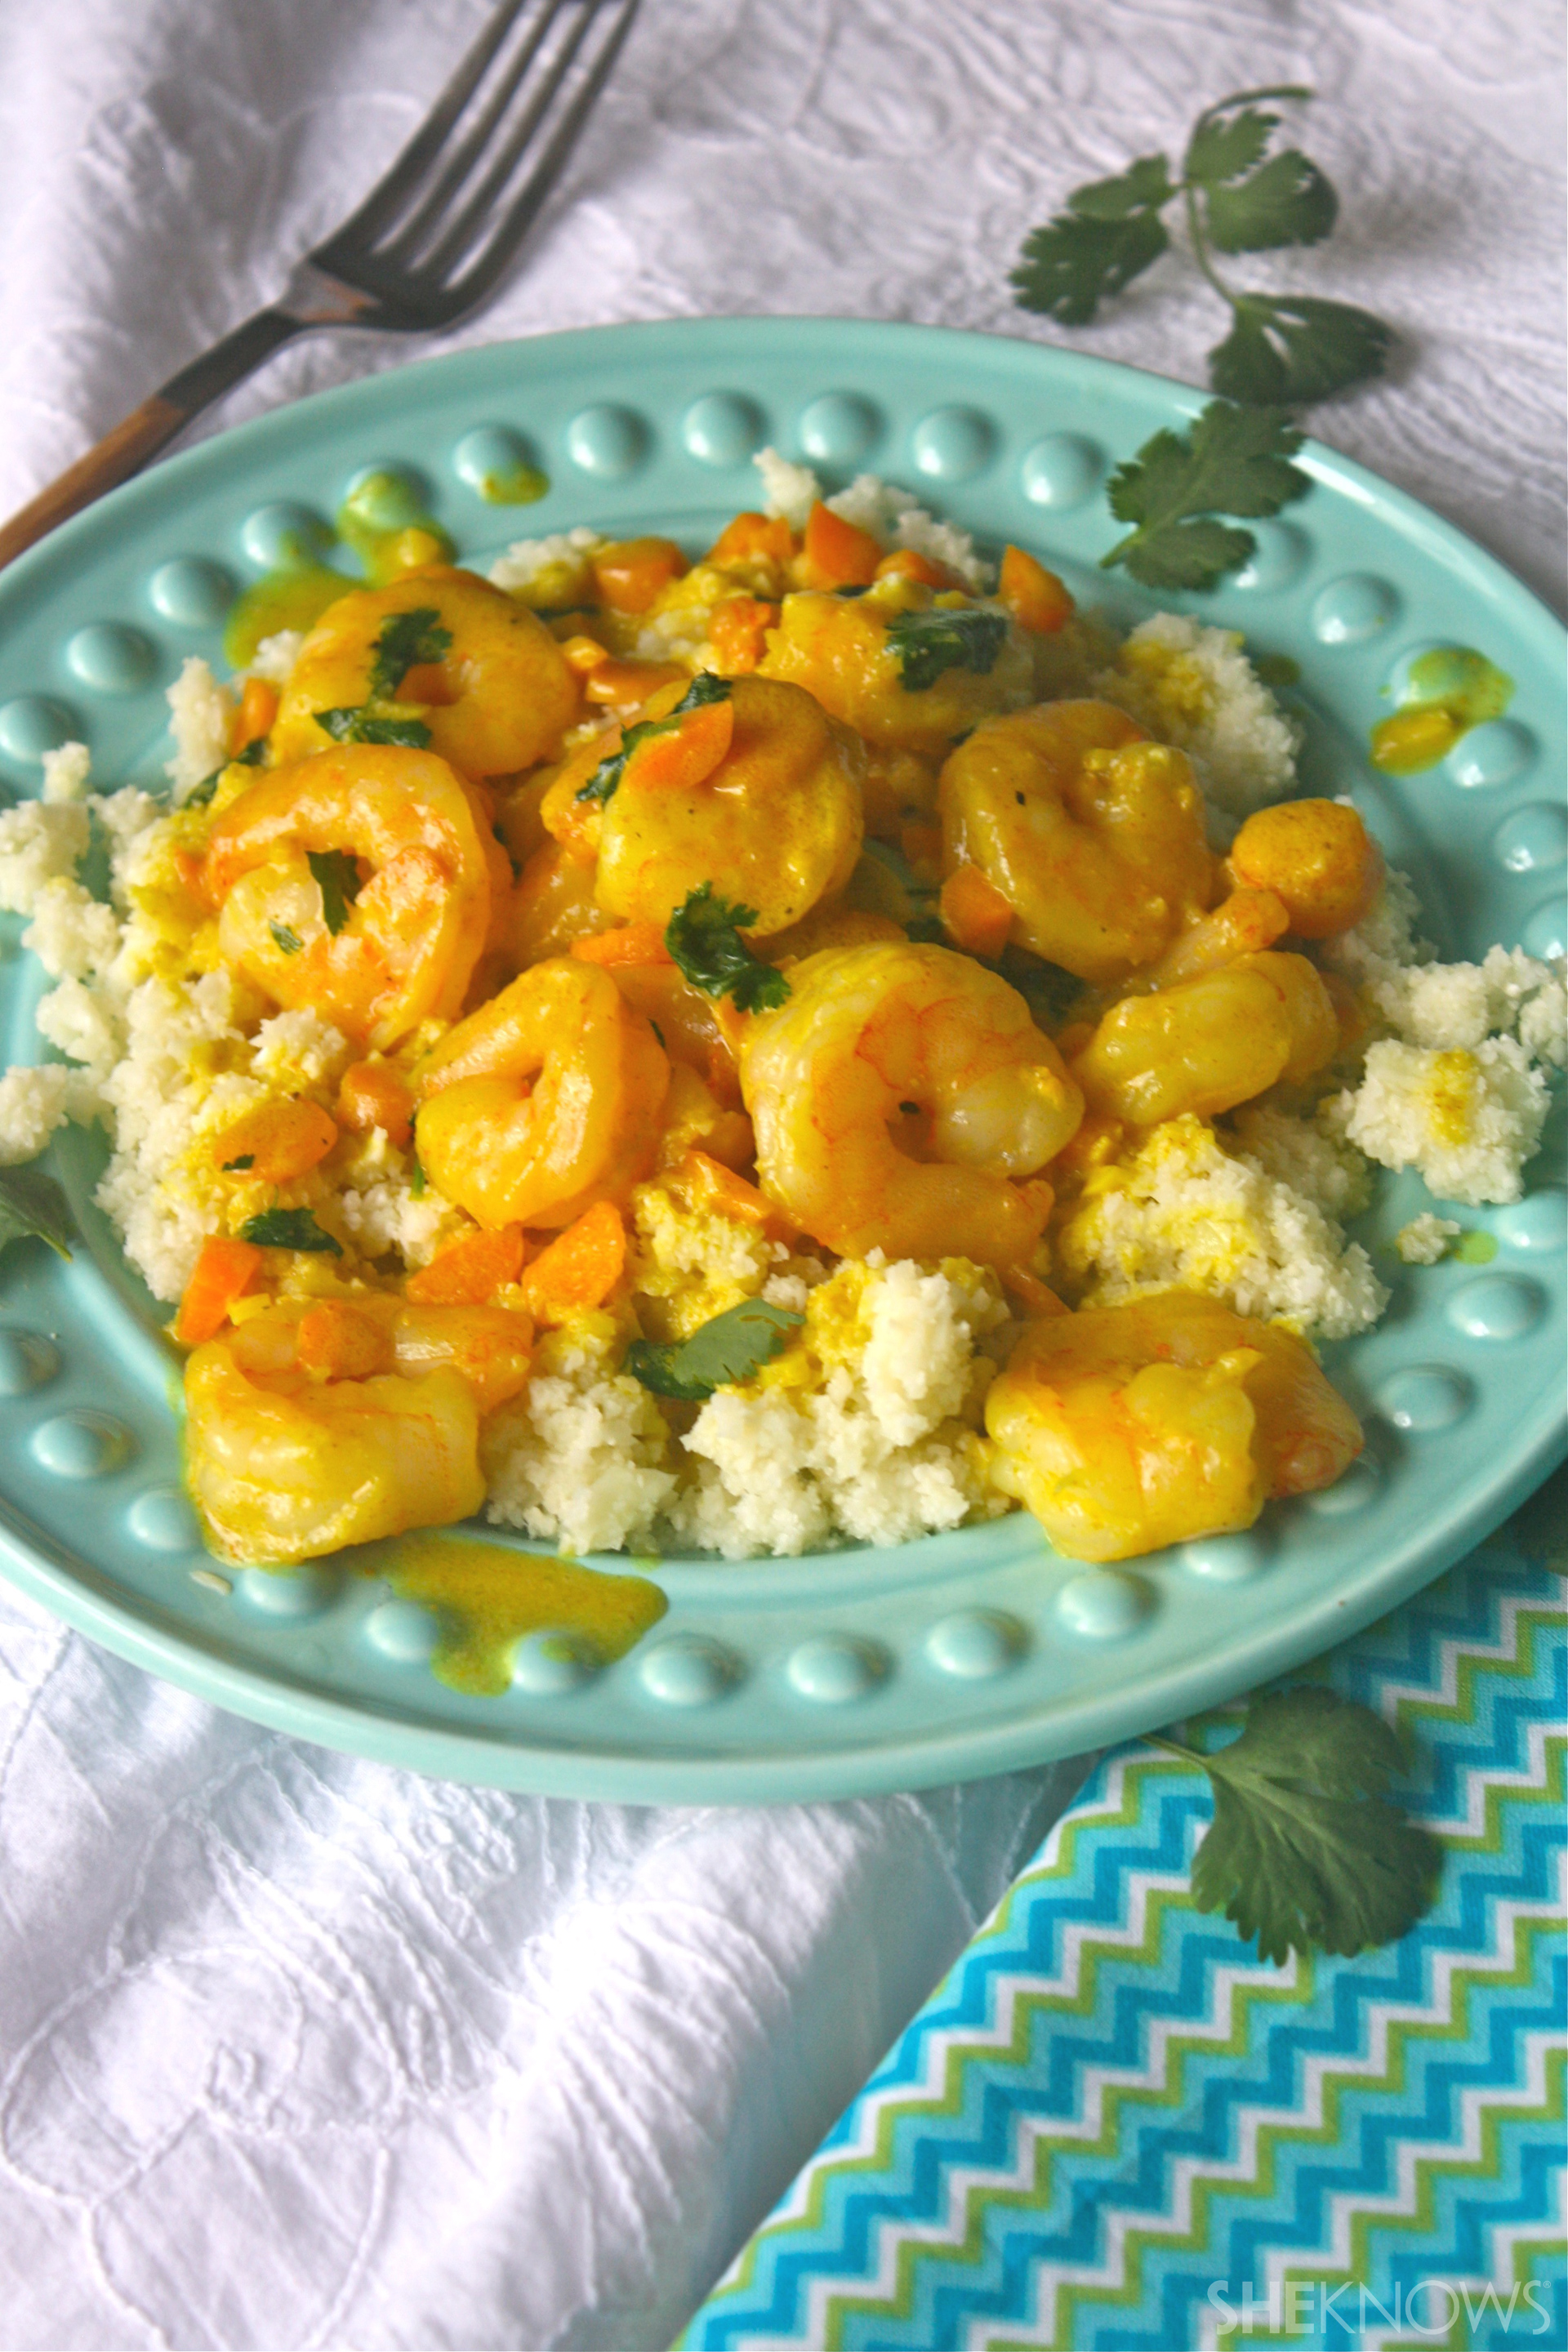 Gluten-free curried shrimp with cauliflower rice